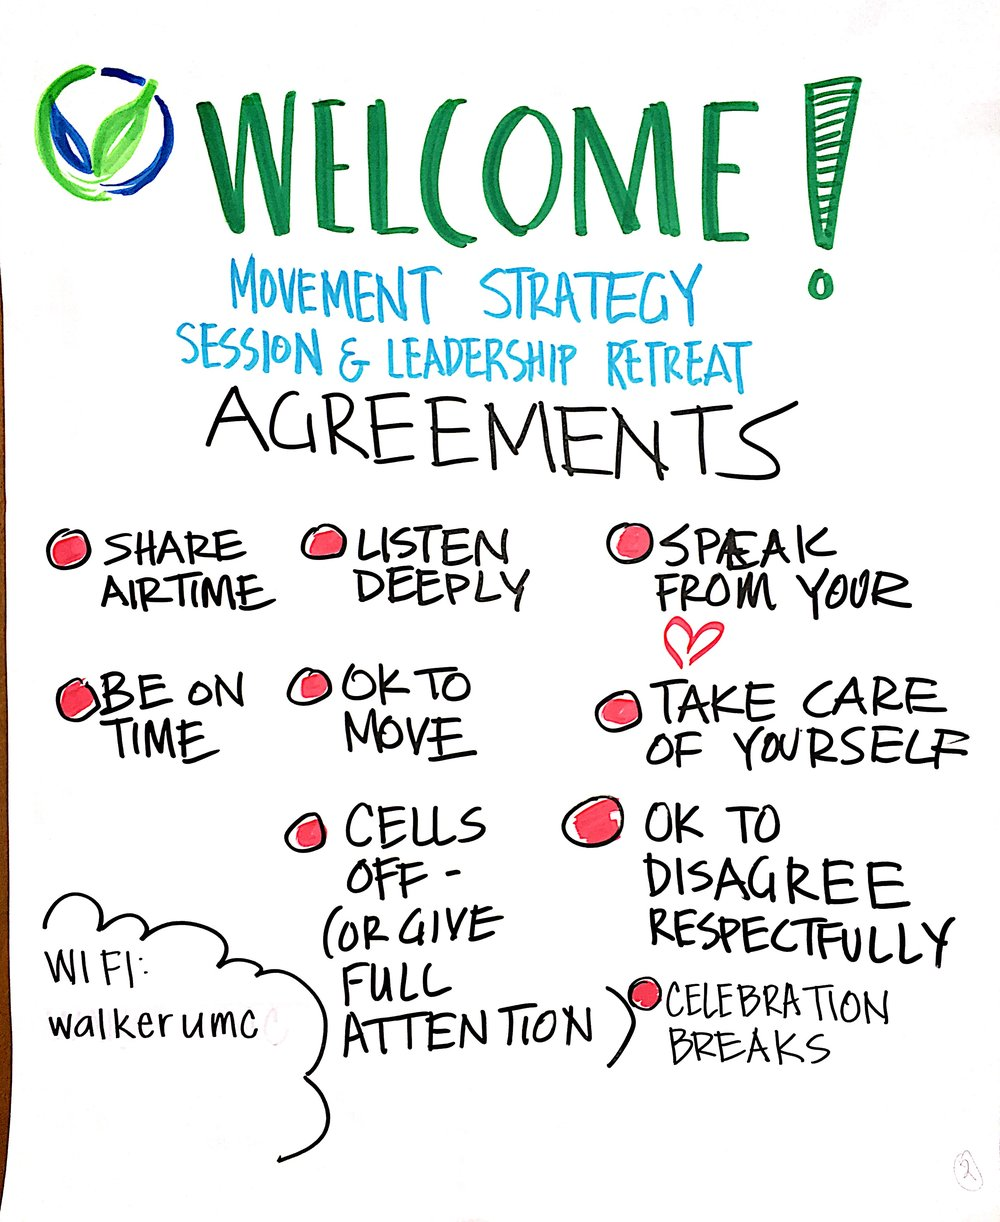 Welcome and Agreements